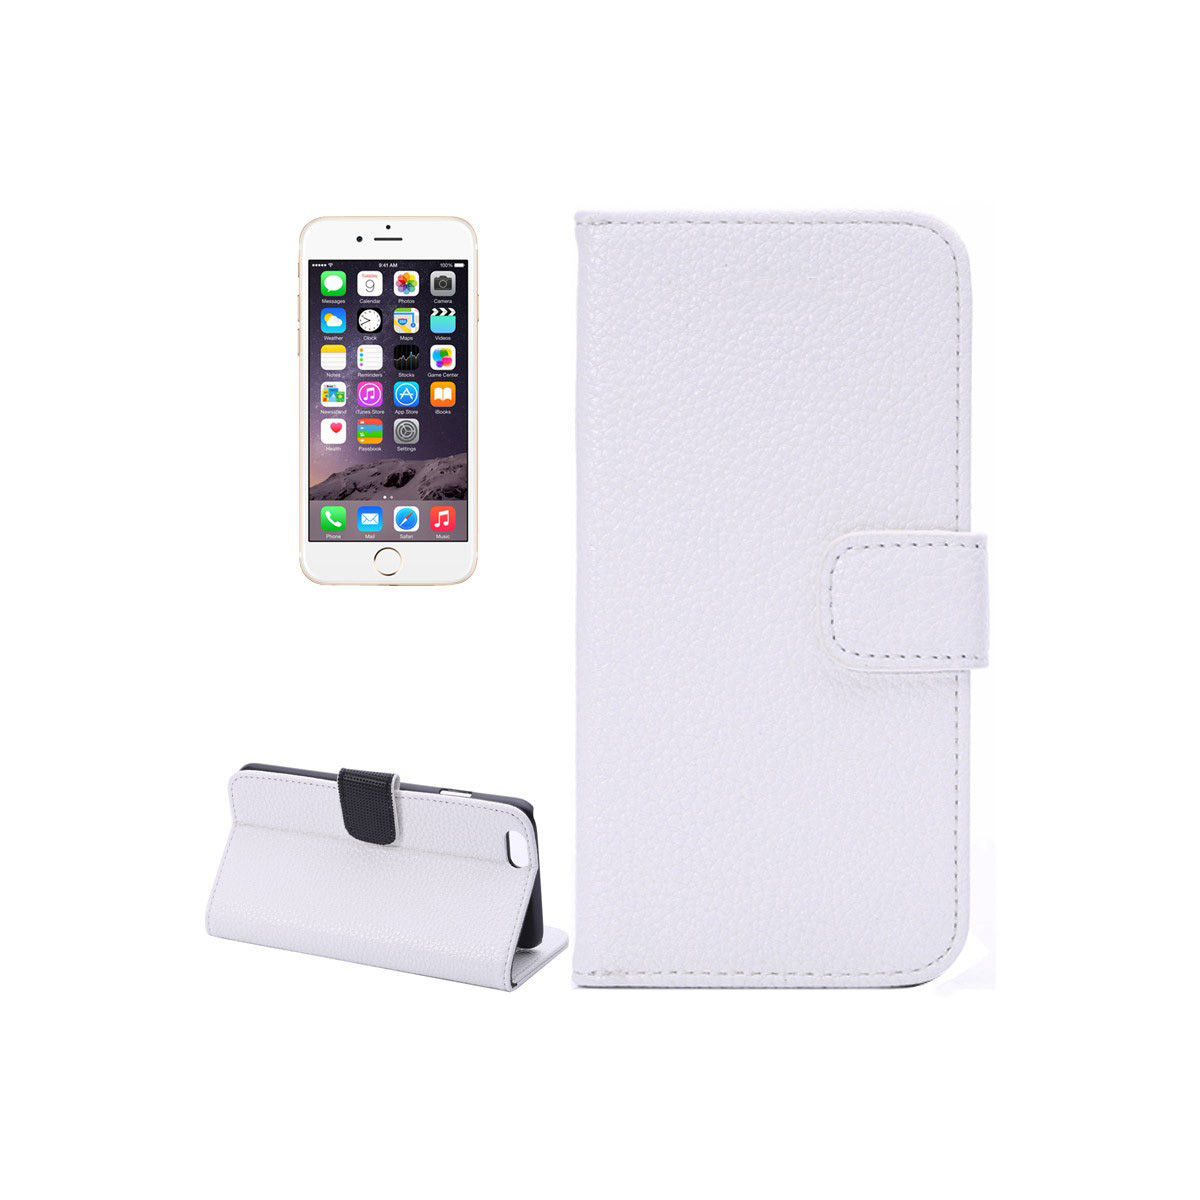 litchi-texture-leather-case-with-card-slots-and-holder-for-iphone-6-plus-white